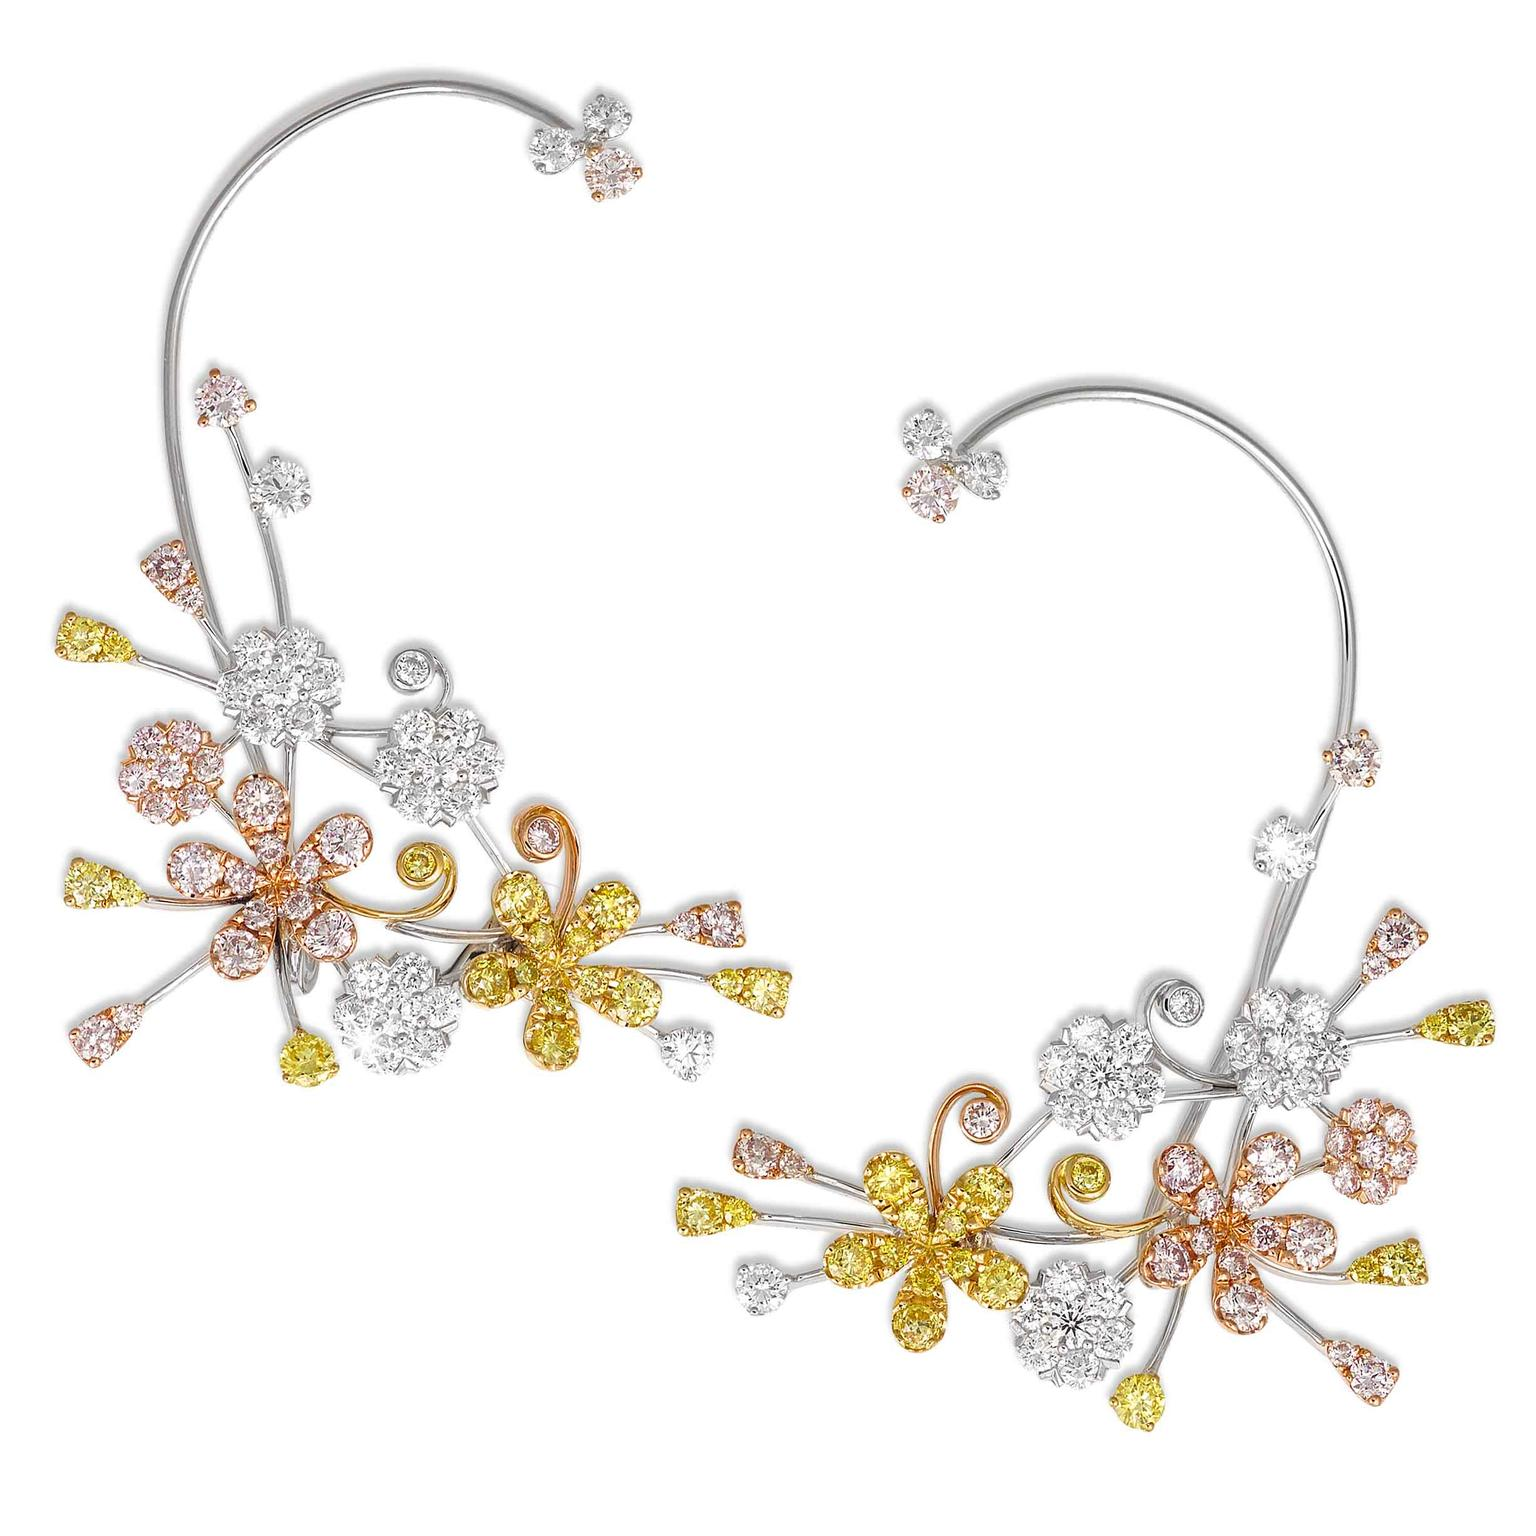 Cherry Blossom ear cuff from David Morris